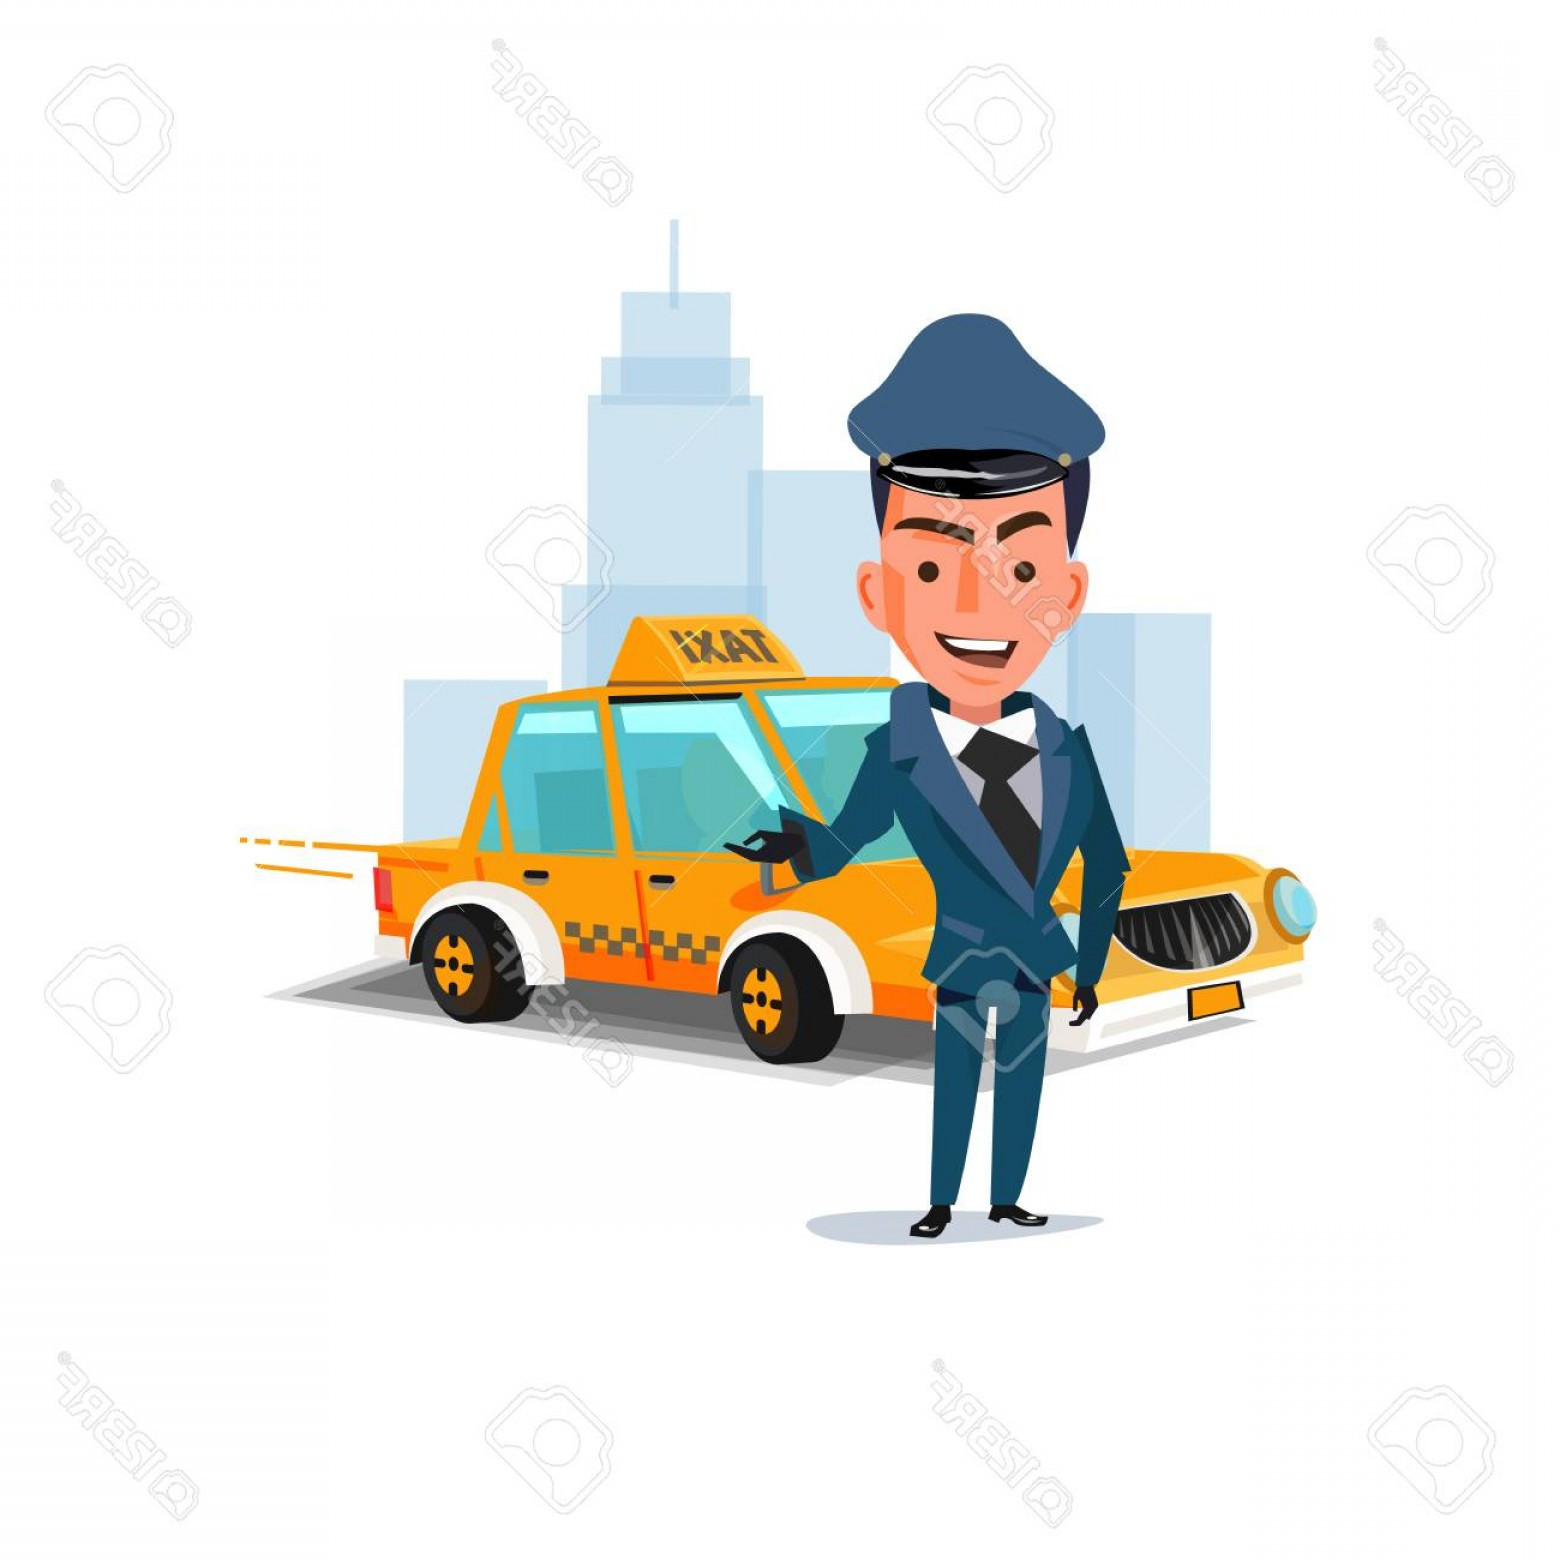 Chauffer Driver Cap Vector: Photostock Vector Chauffeur With His Taxi Car Character Design Taxi Service Concept Vector Illustration